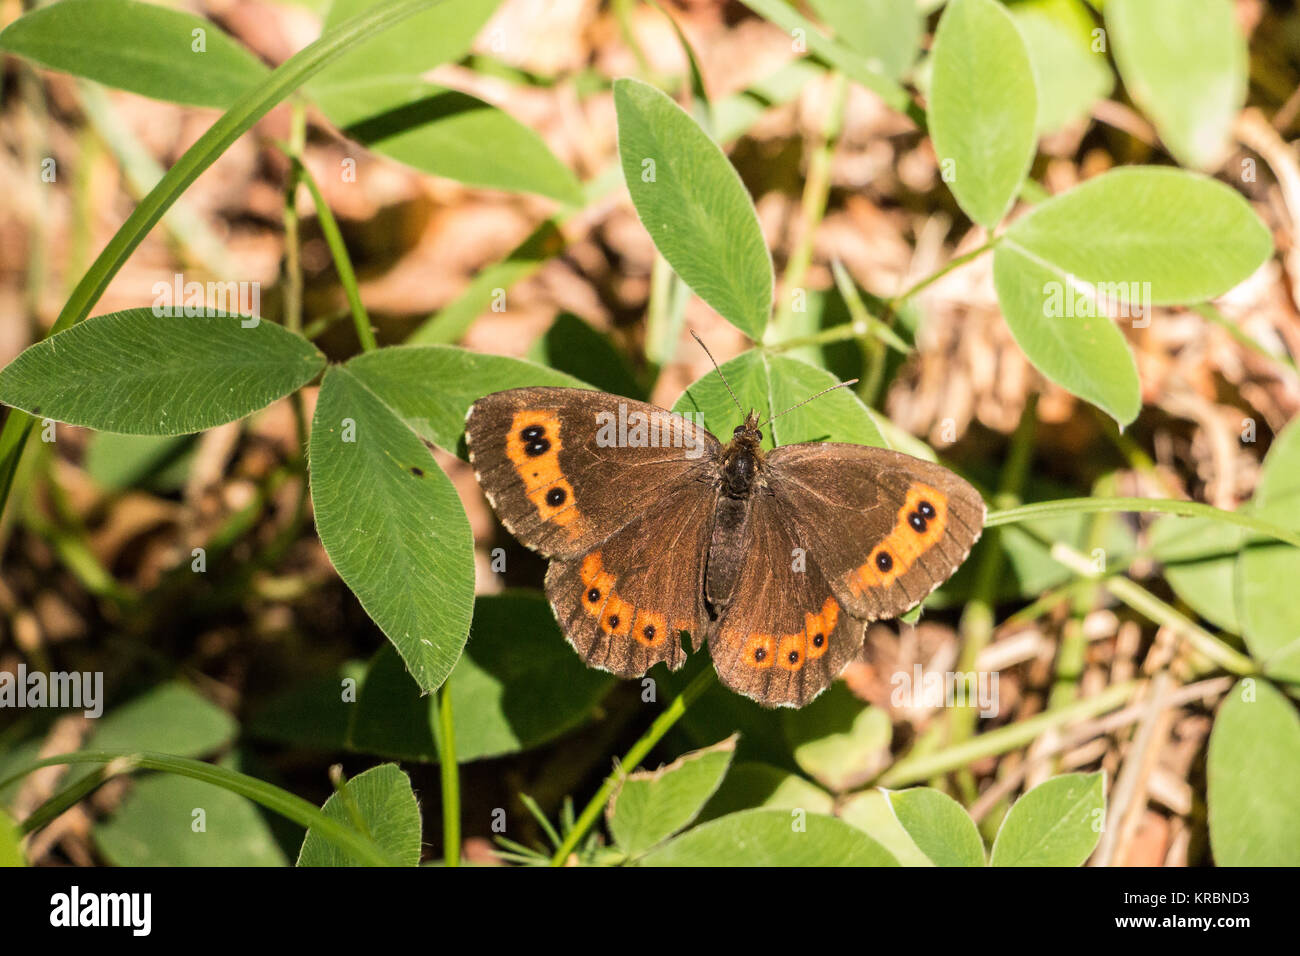 Butterfly on green leaves on the ground of the forest - Stock Image